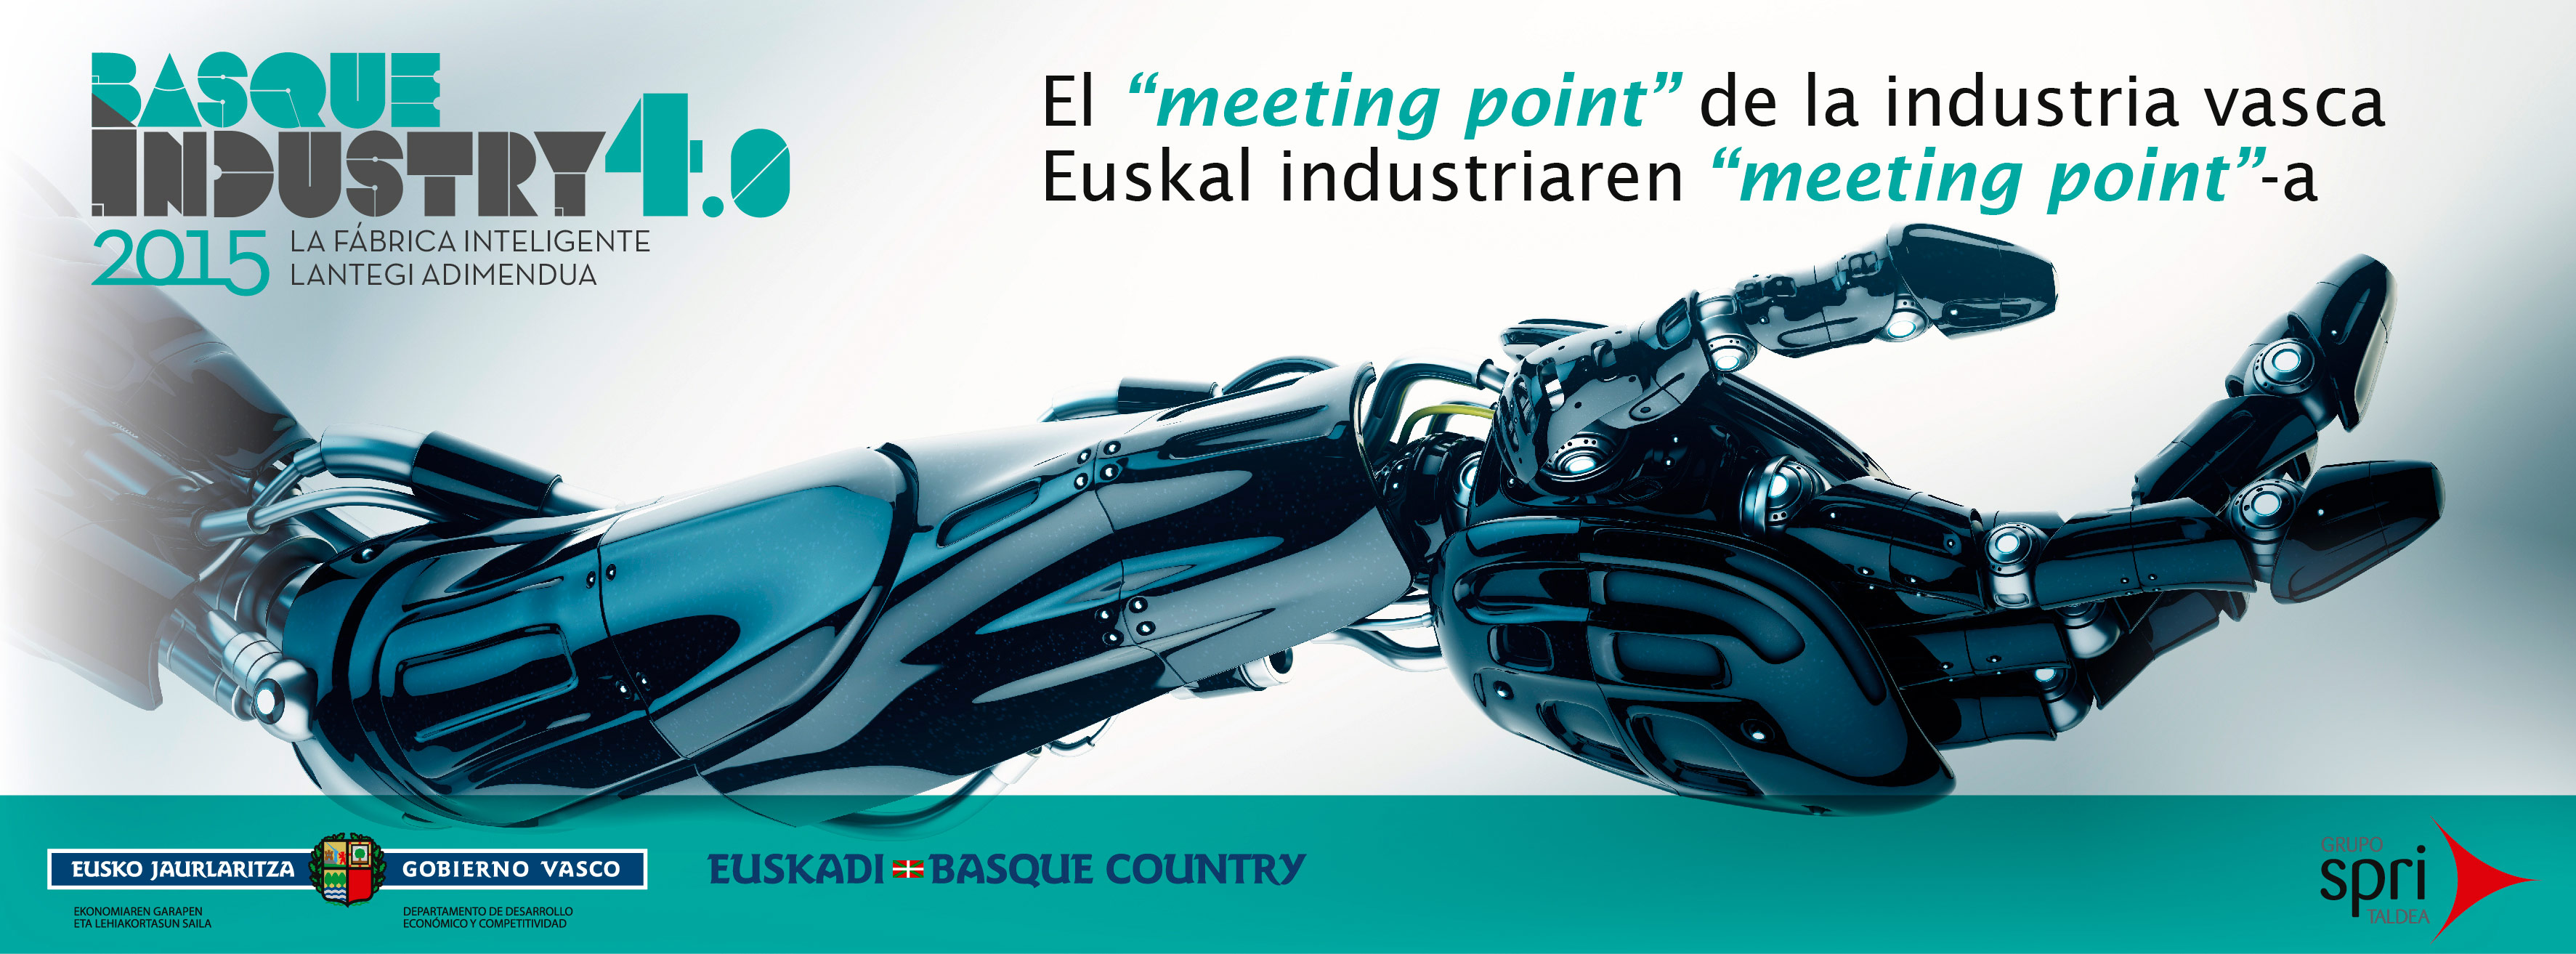 spri_innovacion_Basque Industry 4 0